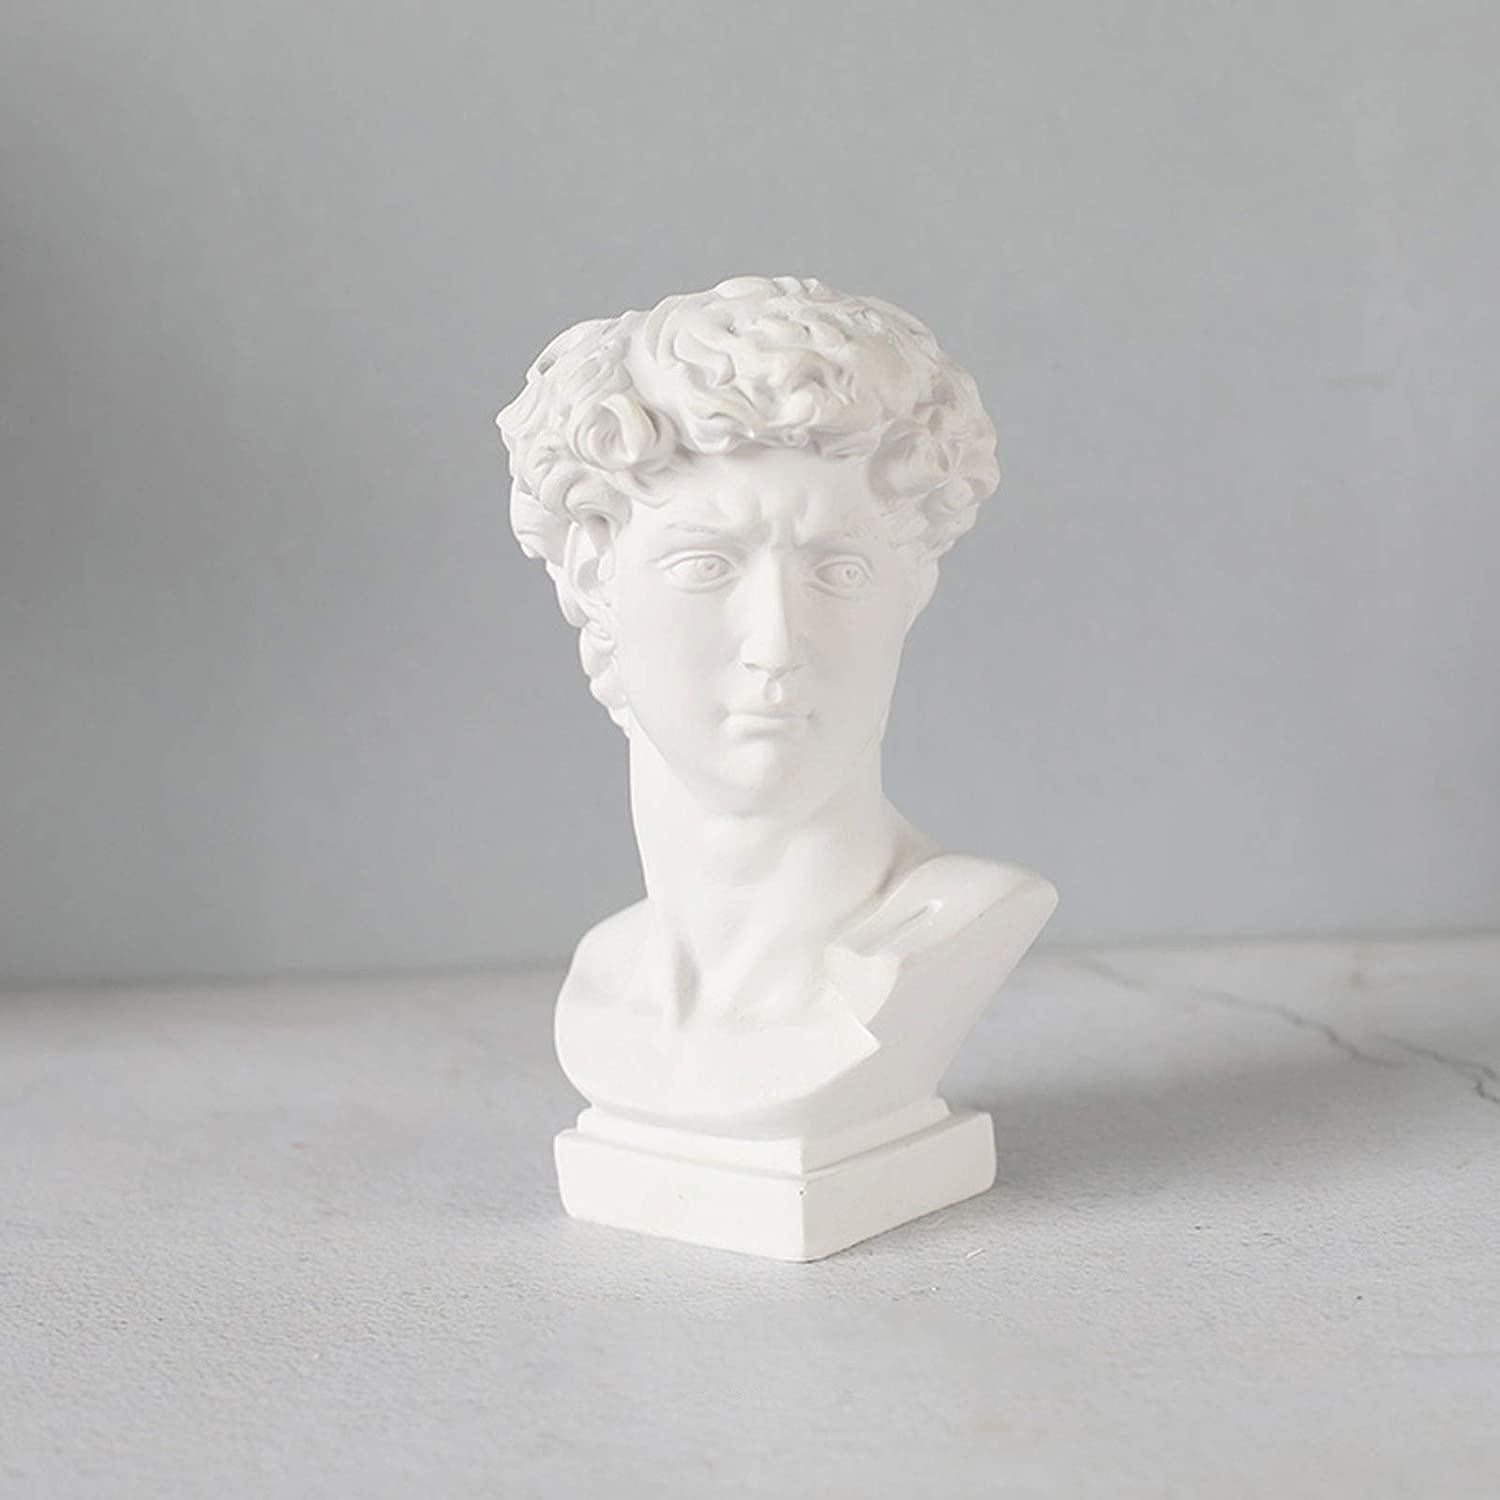 Greek Roman Style Statue Head Planter,Classic Indoor Outdoor Planter Statue Urn for Plants Durable Resin Flower Pot Art Ornaments-c 9x17cm(4x7inch)